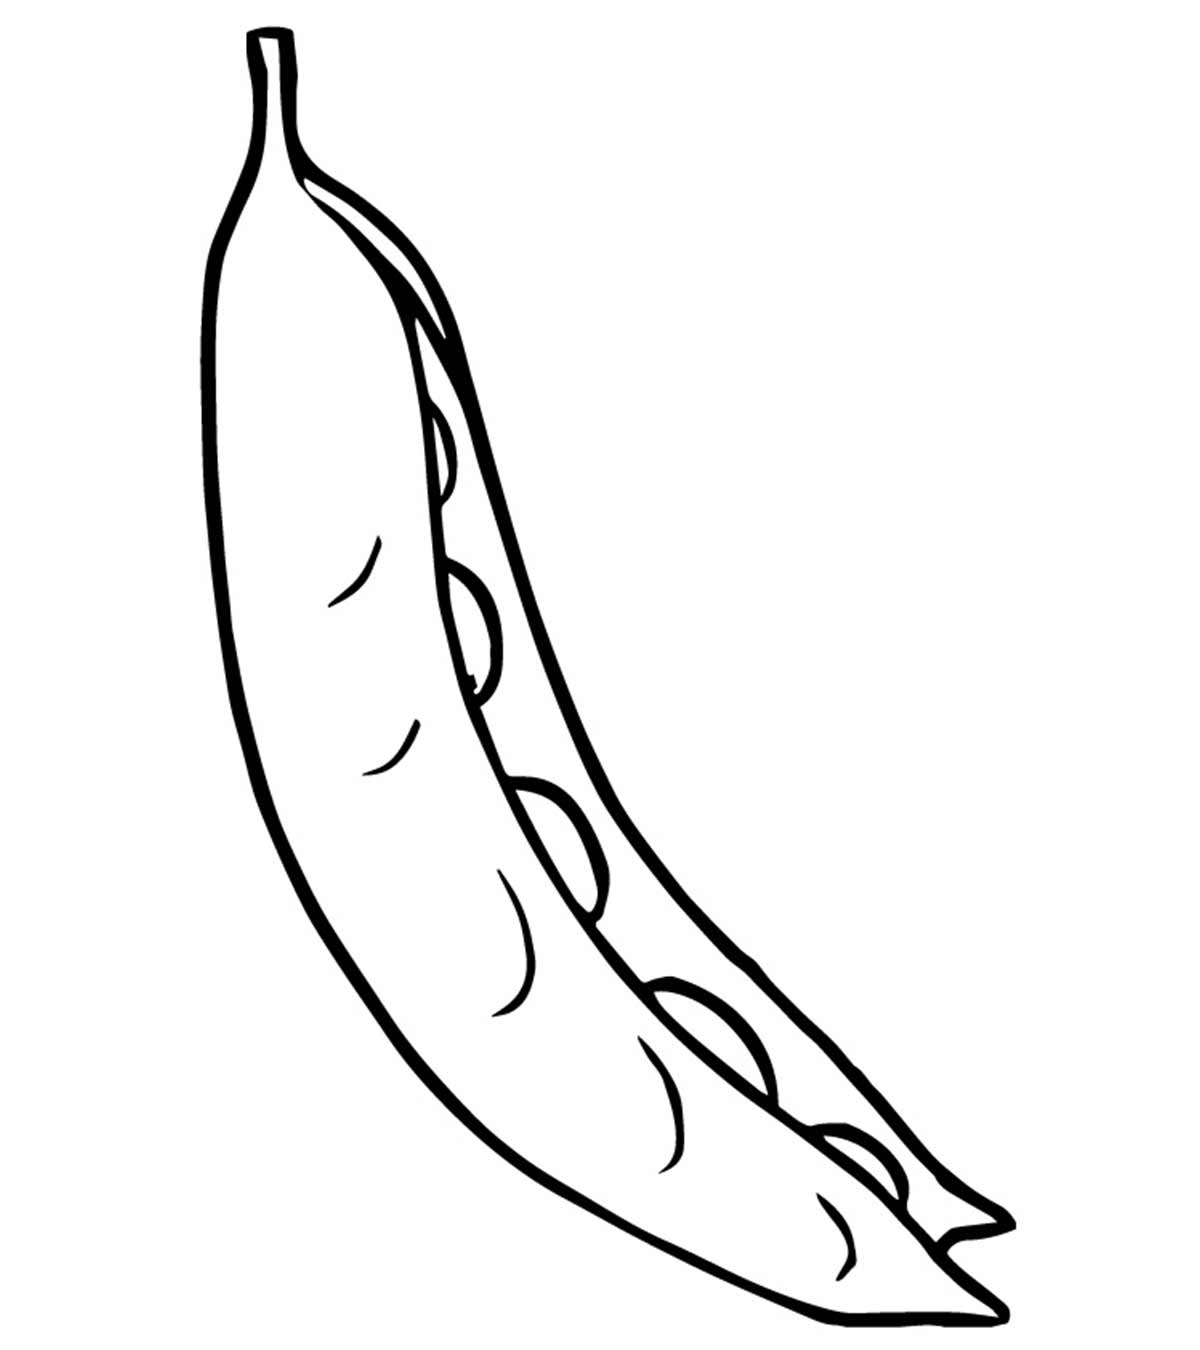 Top 10 Peas Coloring Pages For Toddlers